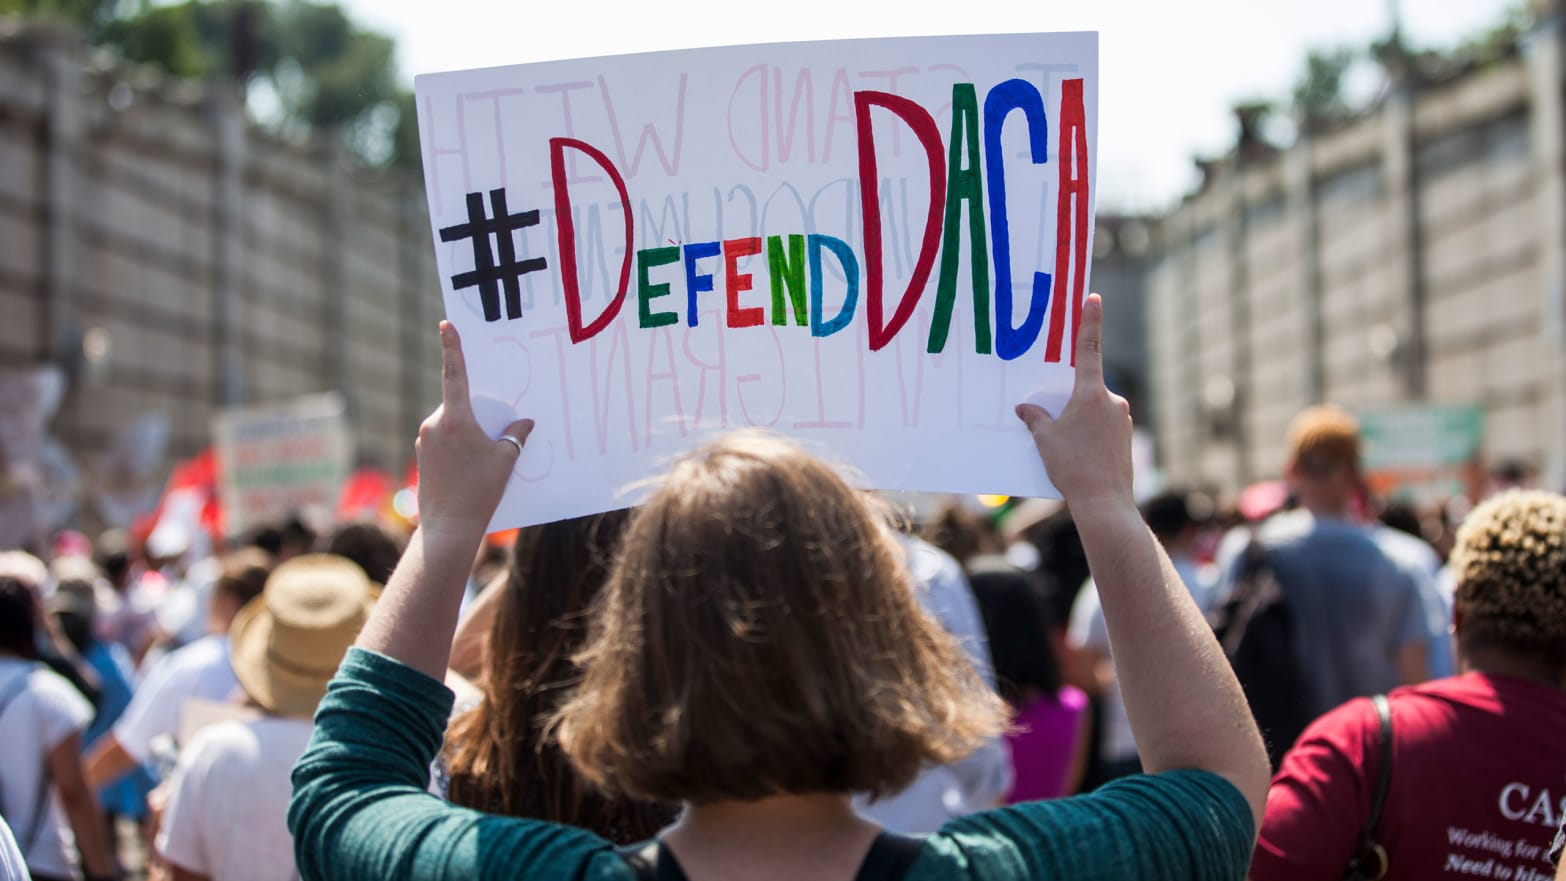 Demonstrators march during a demonstration in response to the Trump Administration's announcement that it would end the Deferred Action for Childhood Arrivals (DACA) program